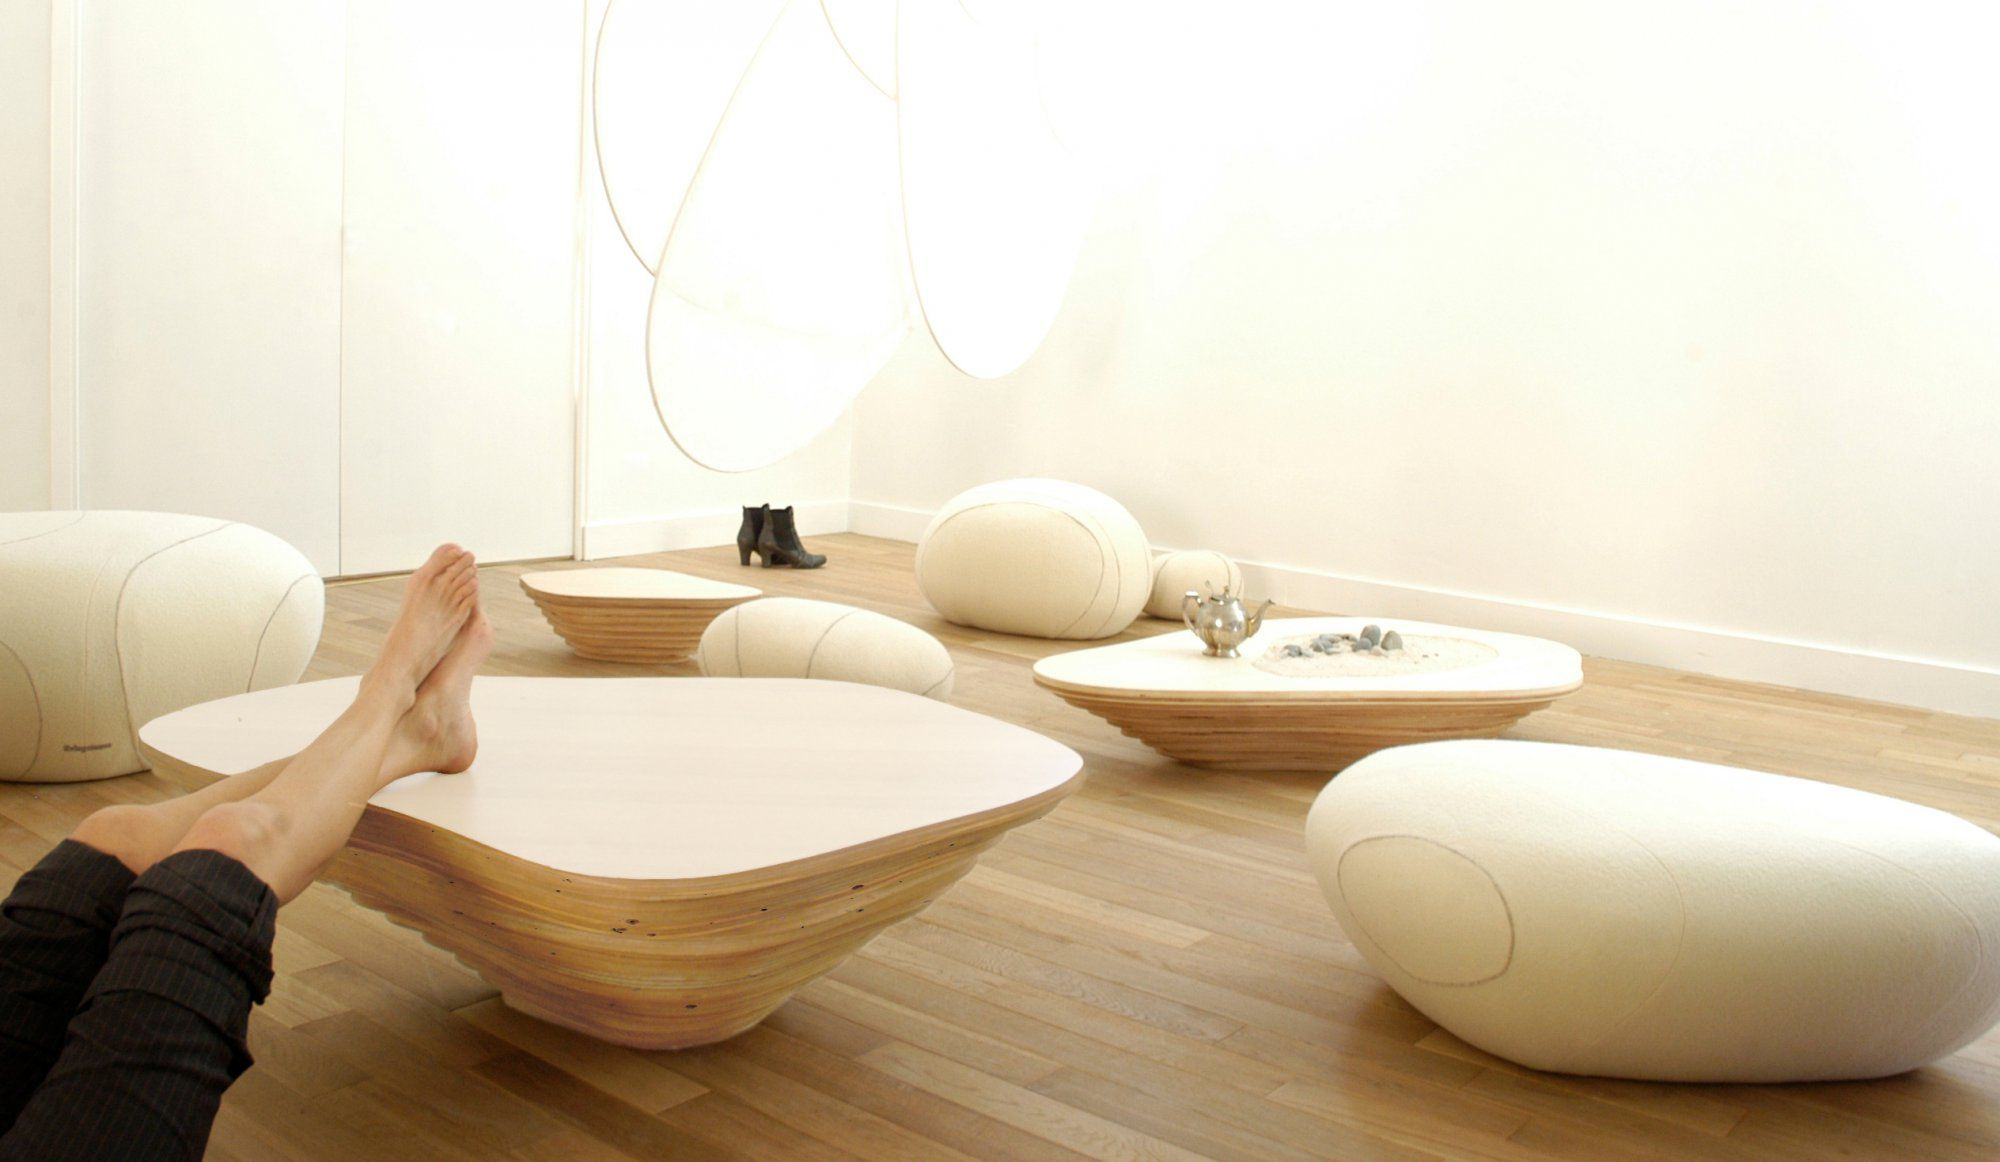 Organic design coffee table wooden mercial modular